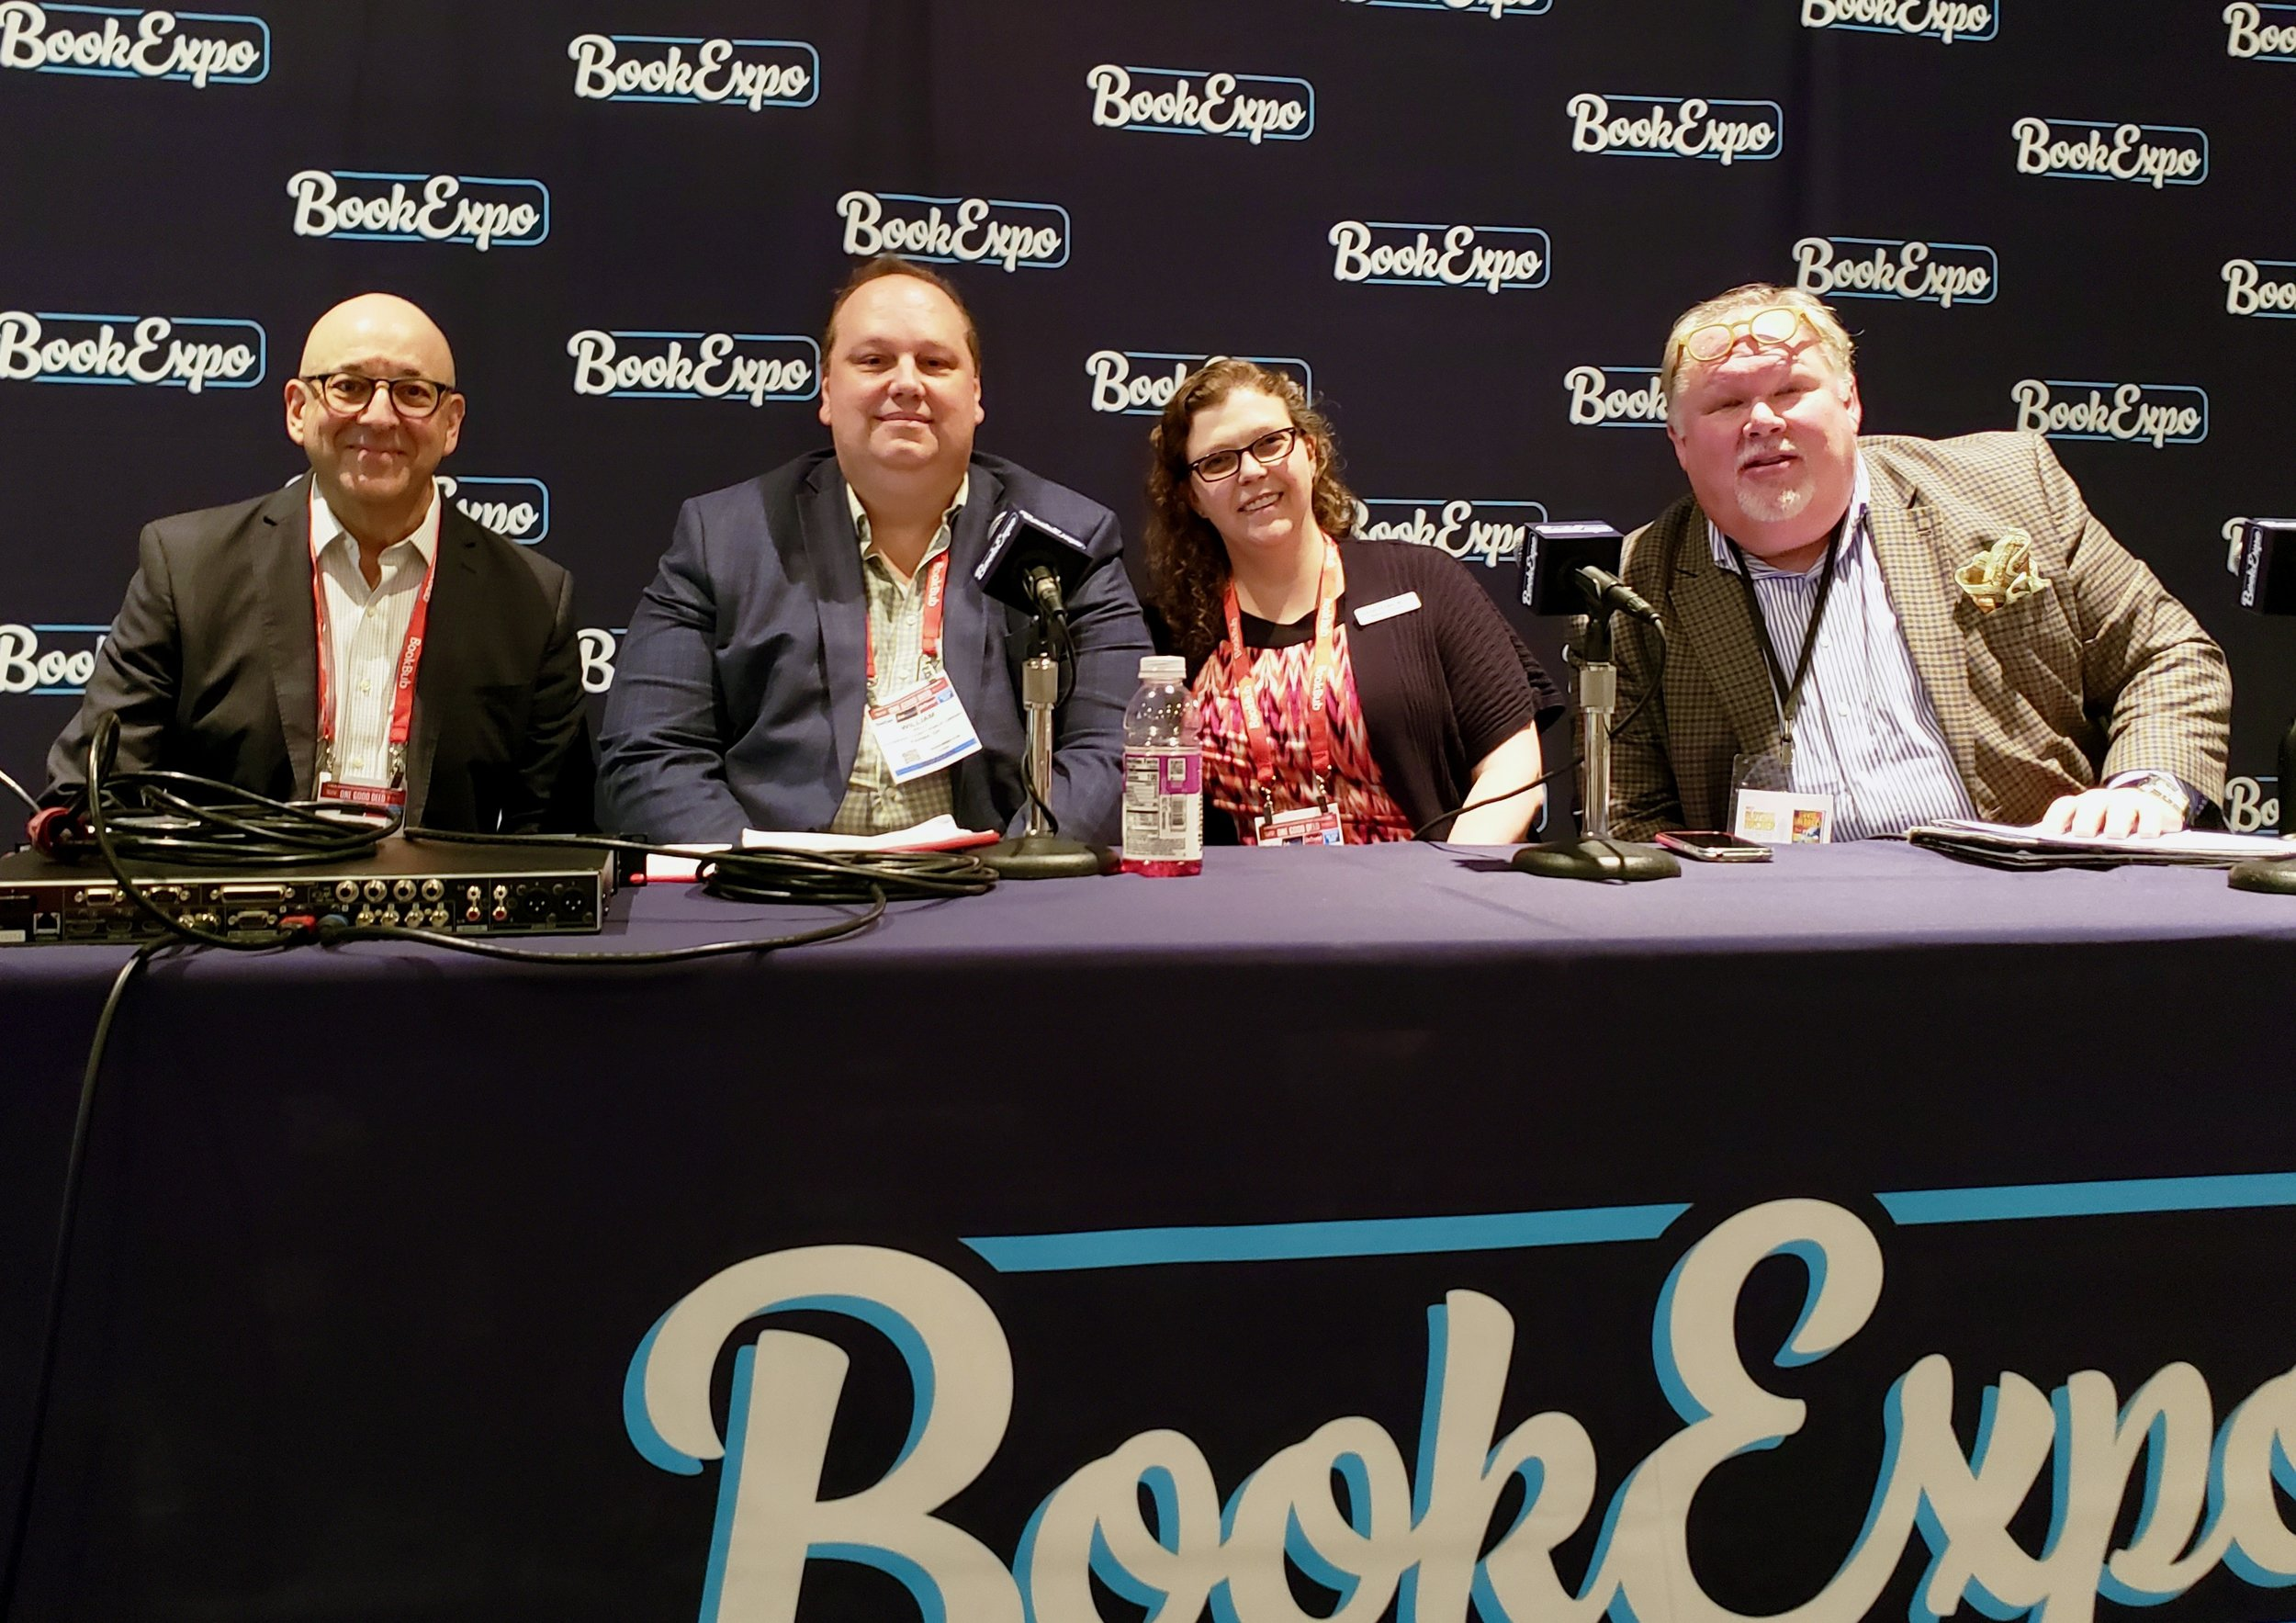 Book Expo panel members Cliff Guren, Bill Kelly, Alexis Petric-Black and Skip Dye